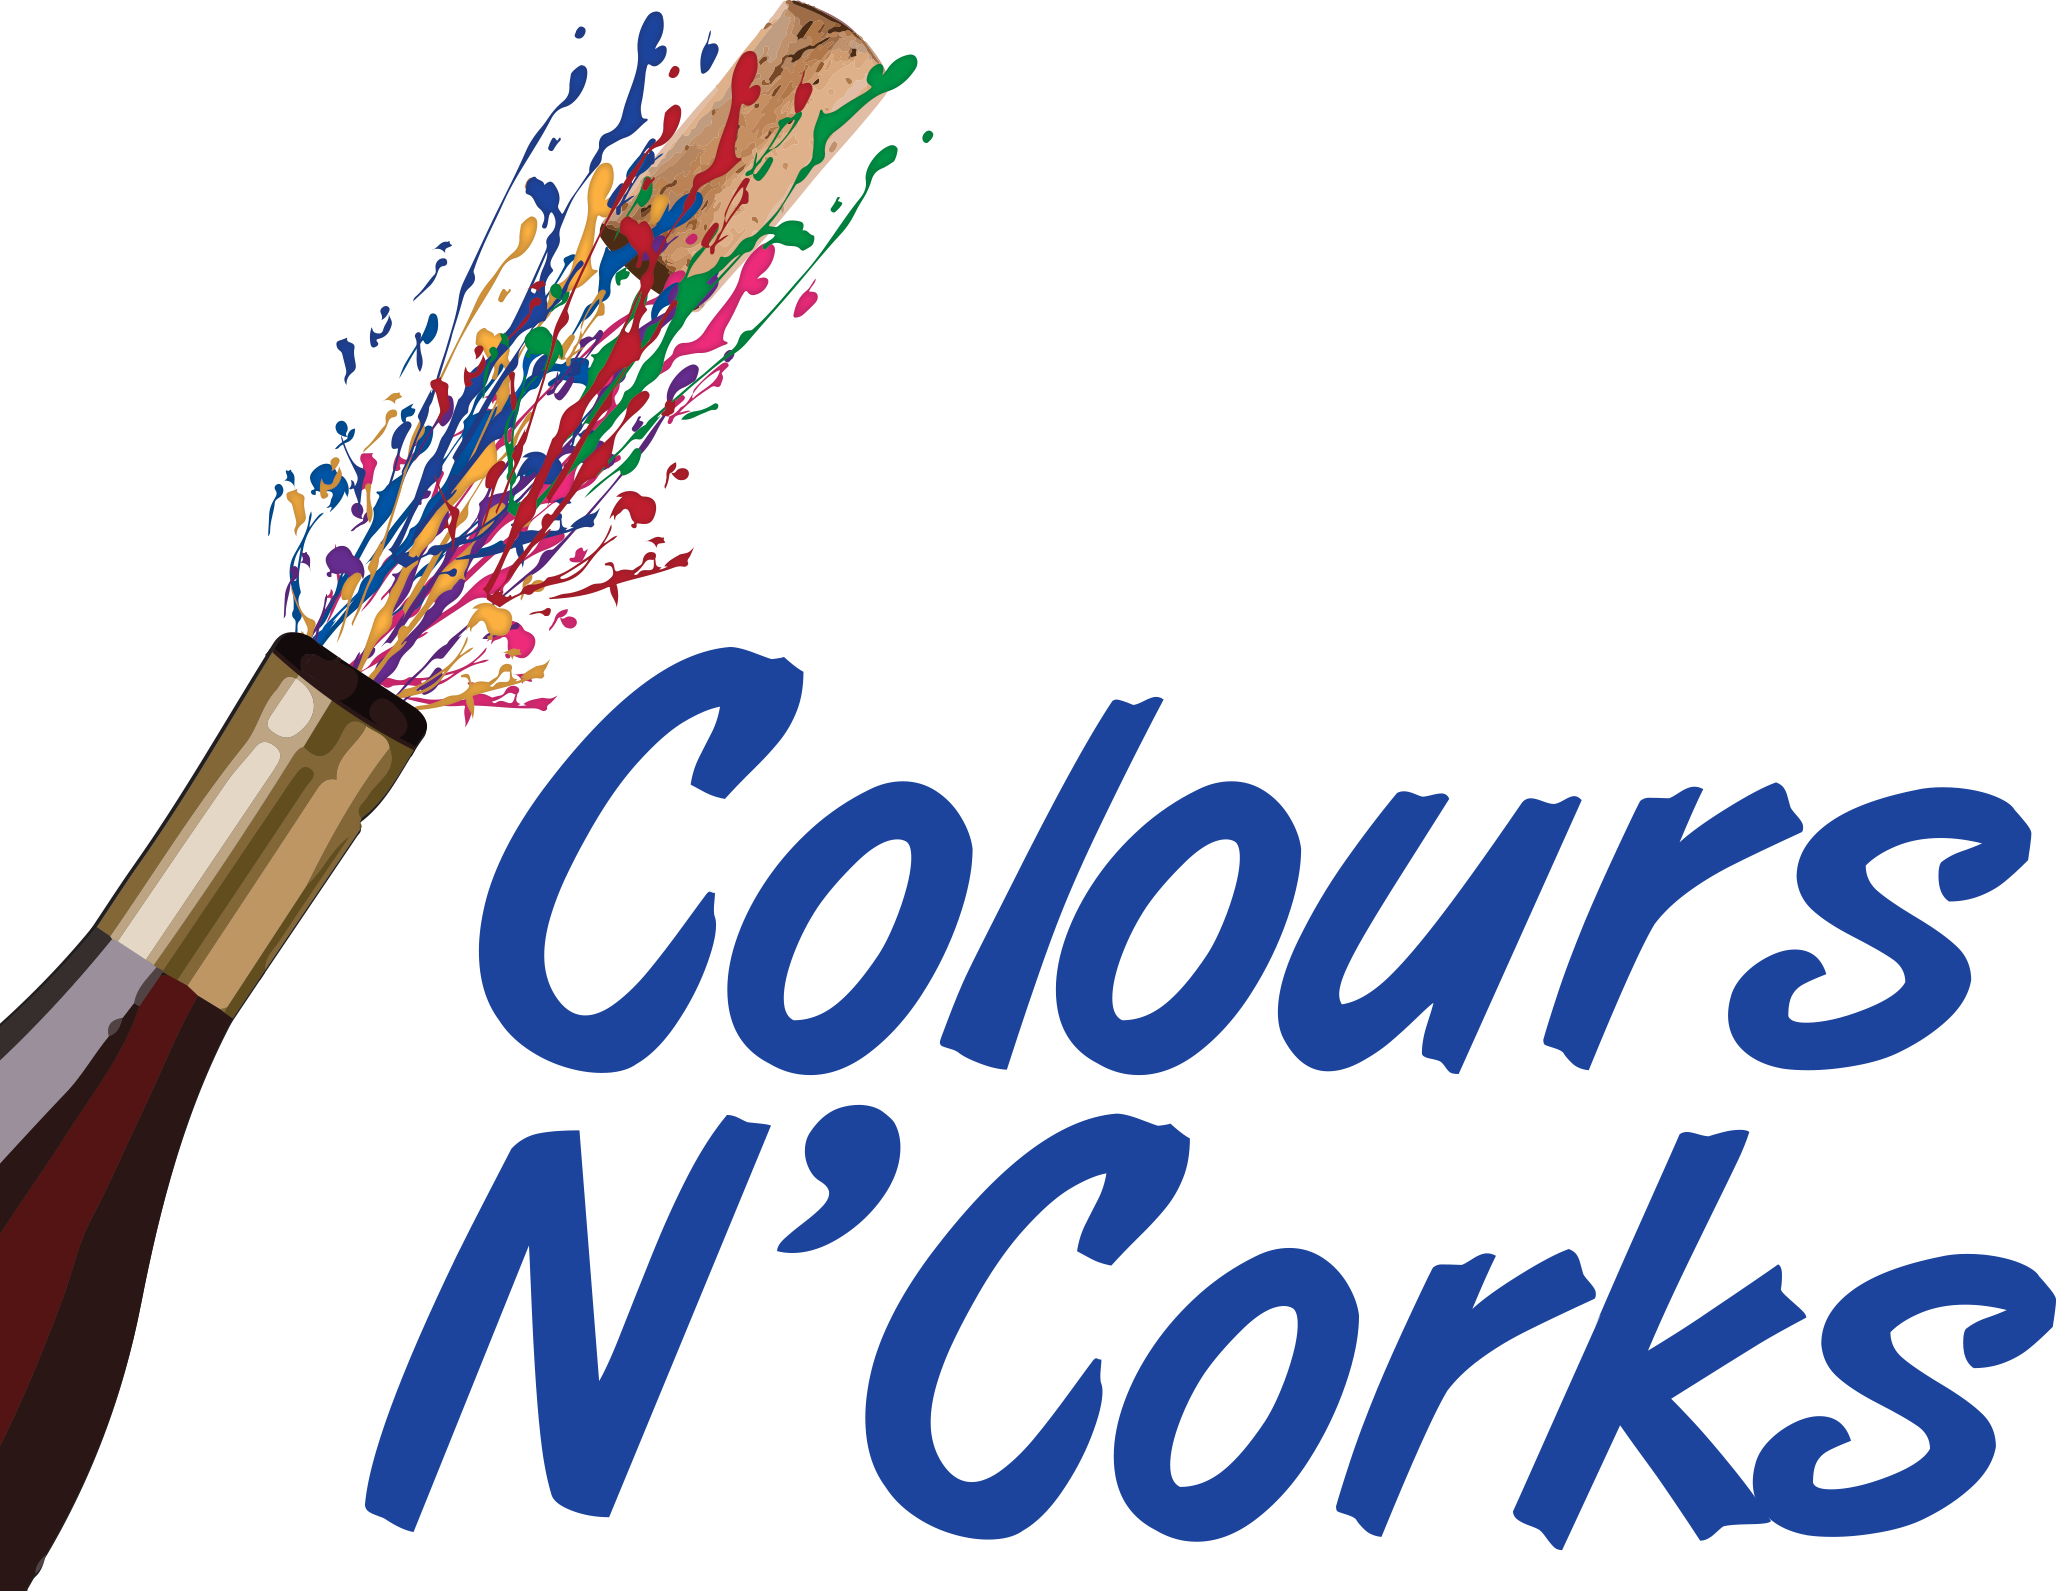 Fundraiser clipart upcoming event. Fundraising colours n corks